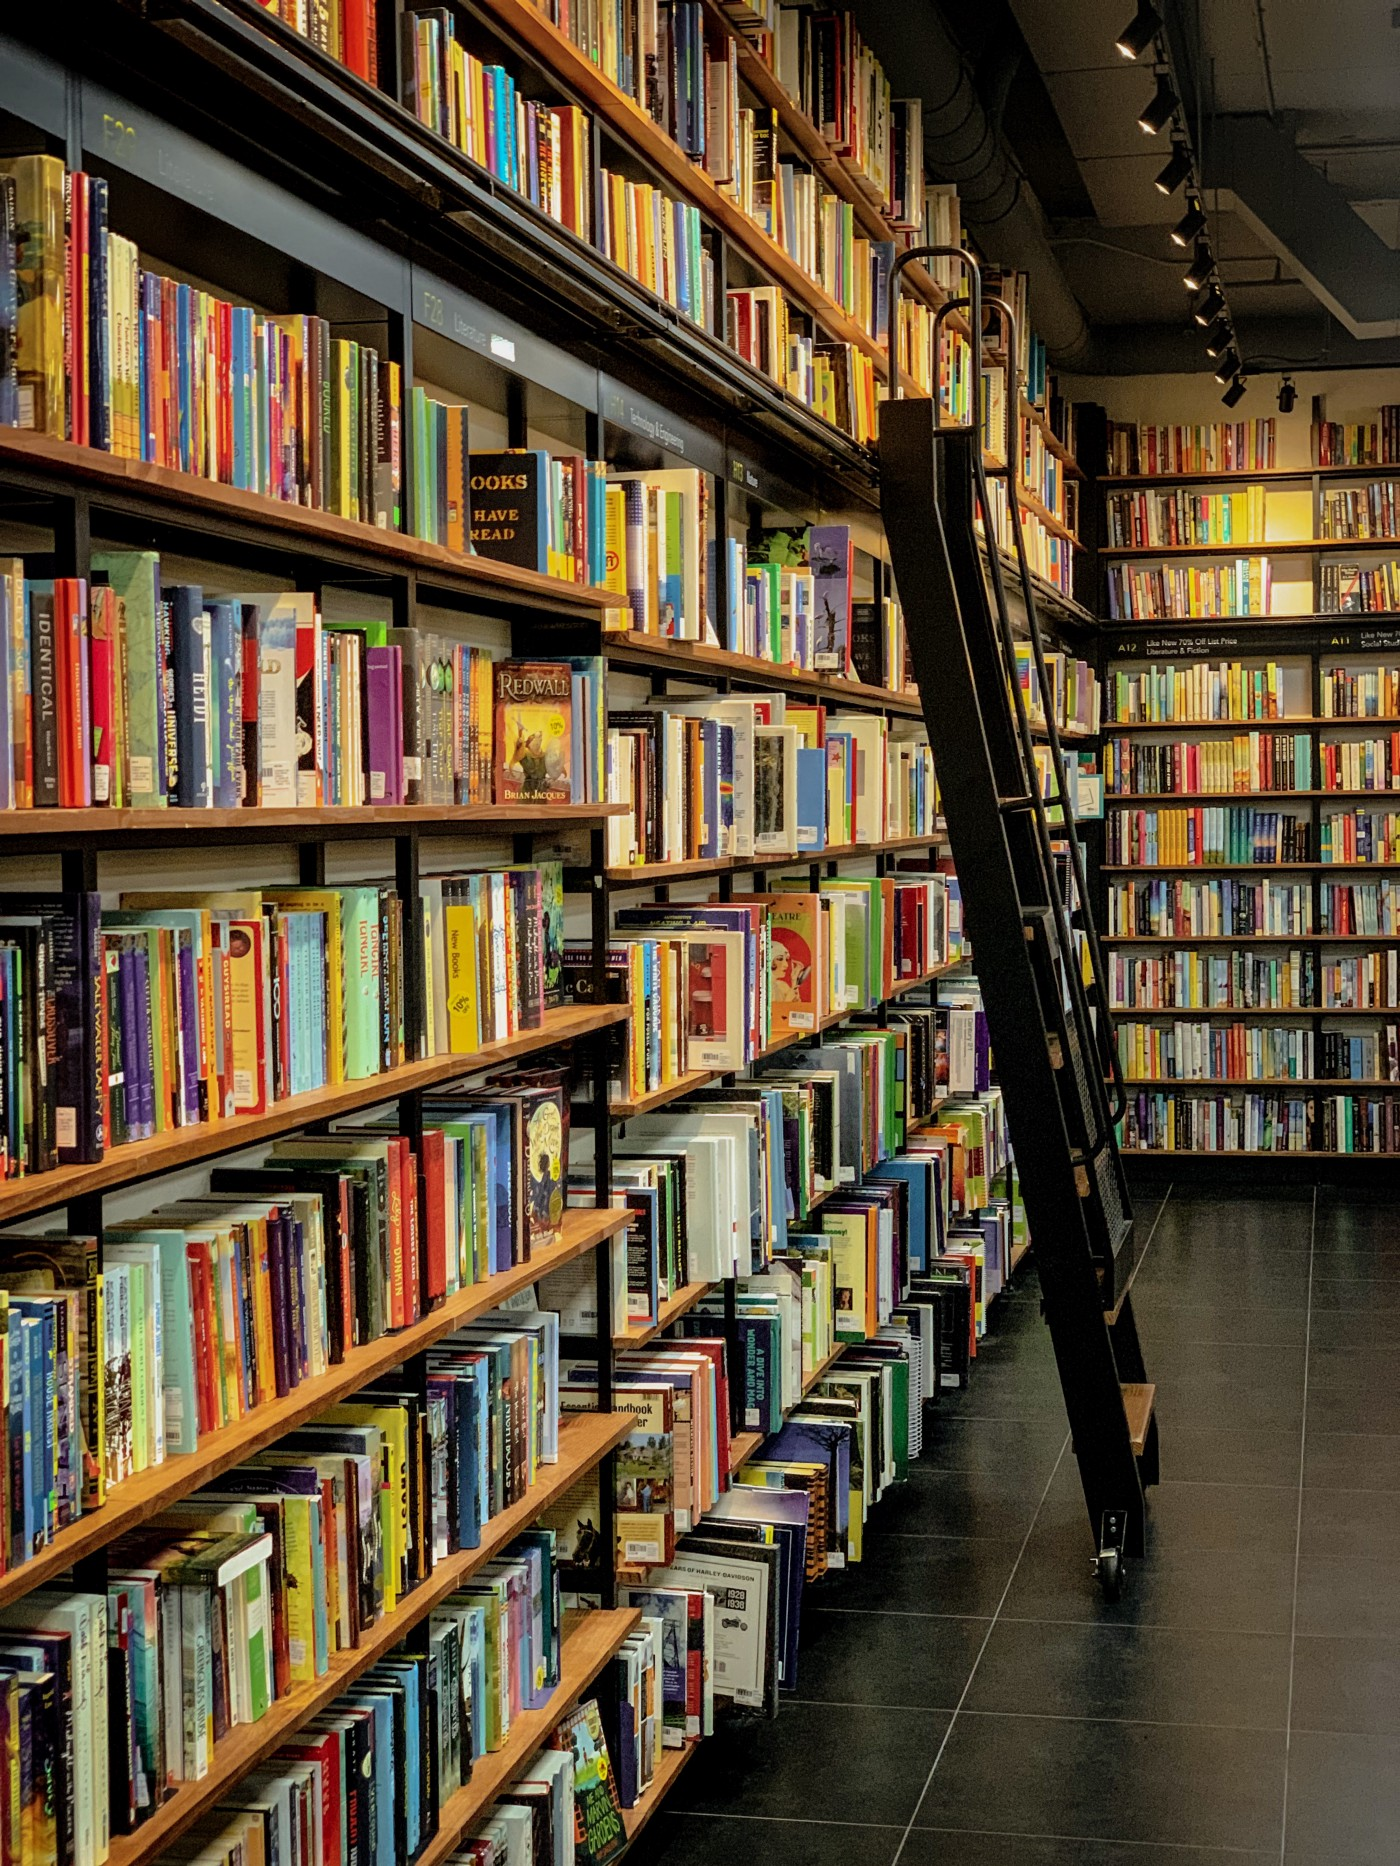 Picture of floor to ceiling bookshelves stocked with books. A ladder leans against a shelf.